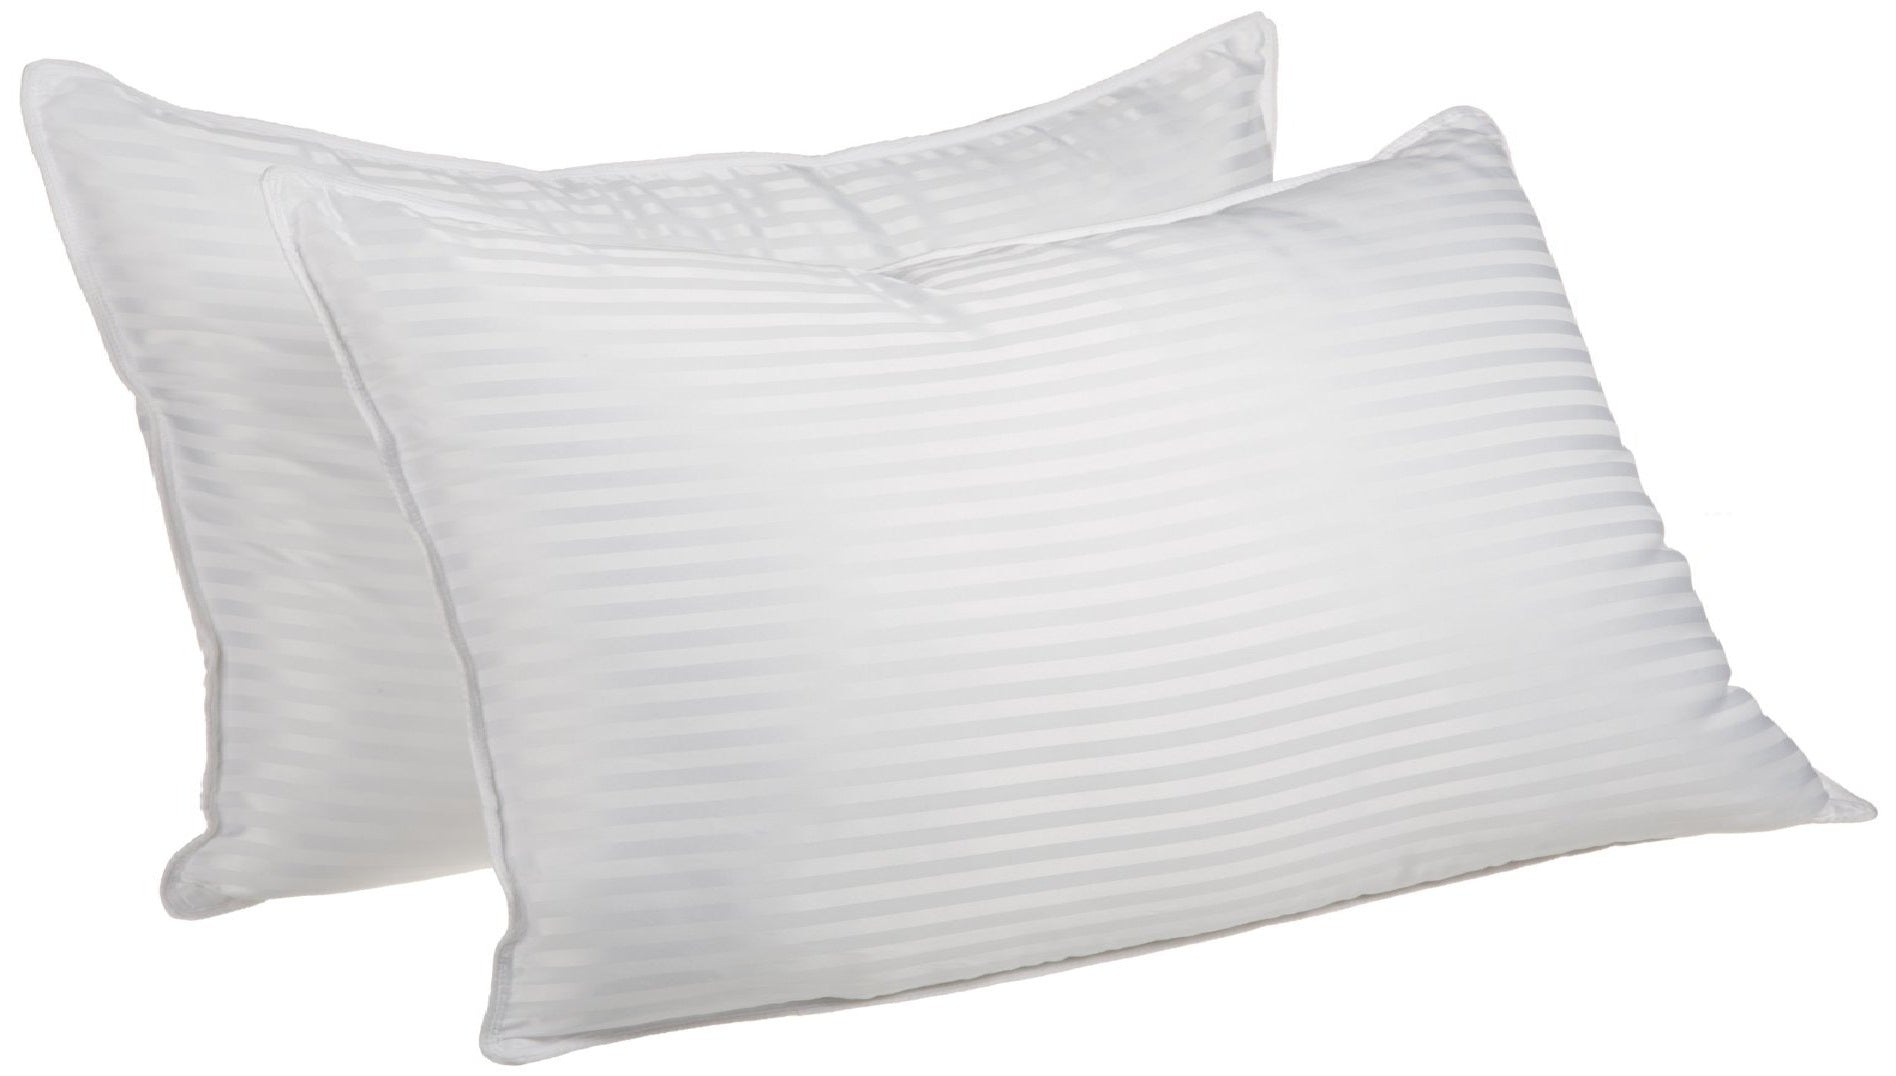 2 Pack Bed Pillows Down Alternative Premium Quality Striped, 2 Sizes - Blue Nile Mills